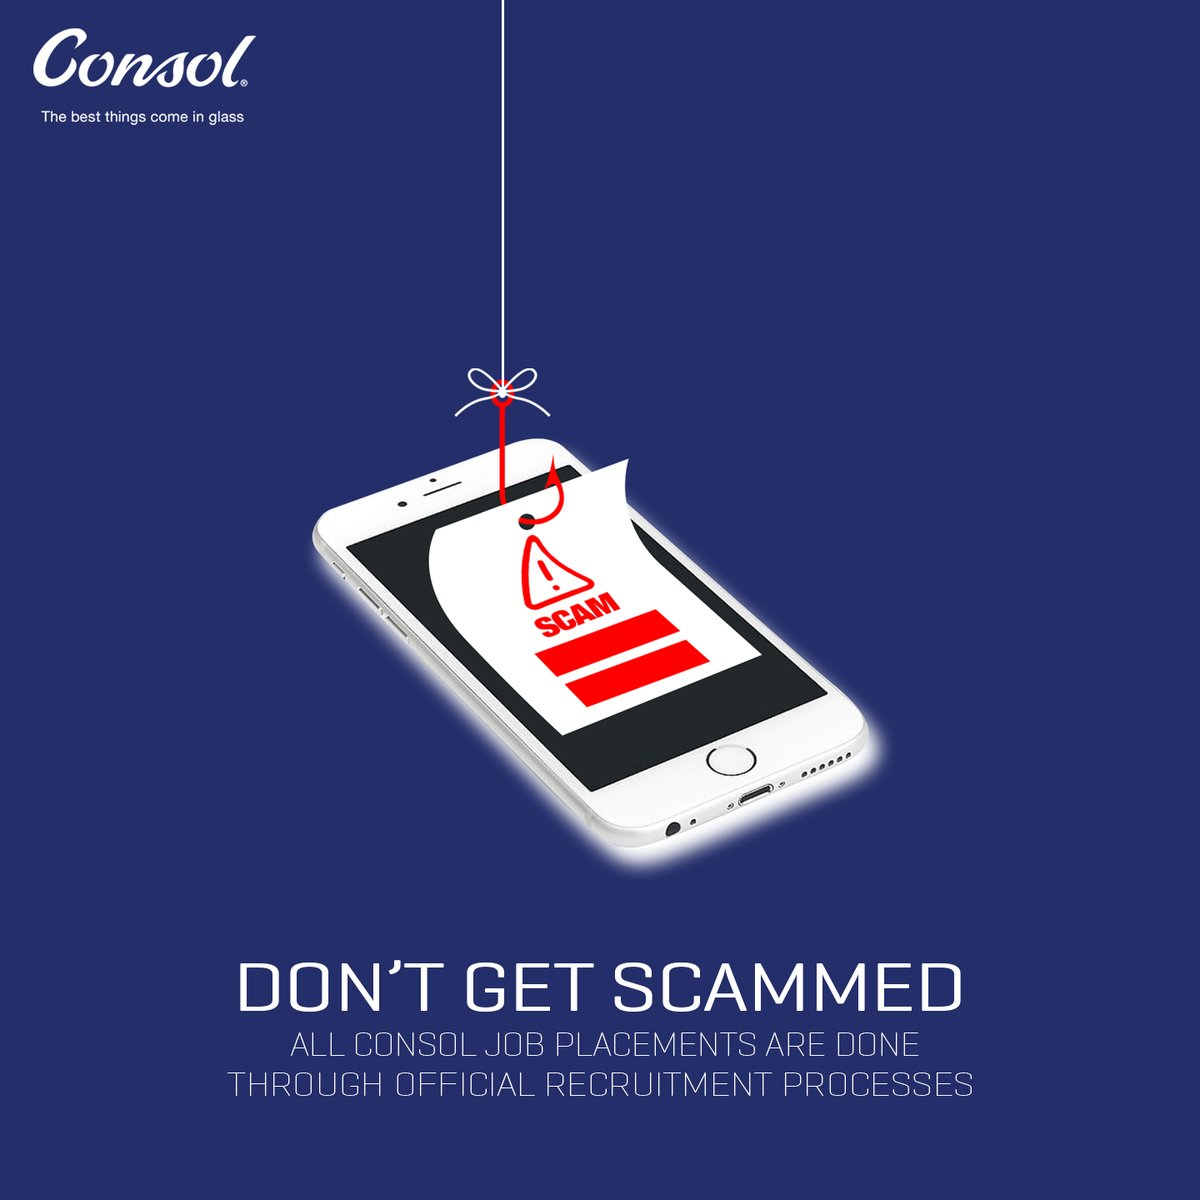 If you're interested in a career at Consol, please visit us online. Available vacancies can be found on the Careers page, on our website: https://t.co/vGijt4v0LQ  We follow strict recruitment processes so please do not fall victim to scams. #ConsolGlass https://t.co/ZUJIl9HWdD